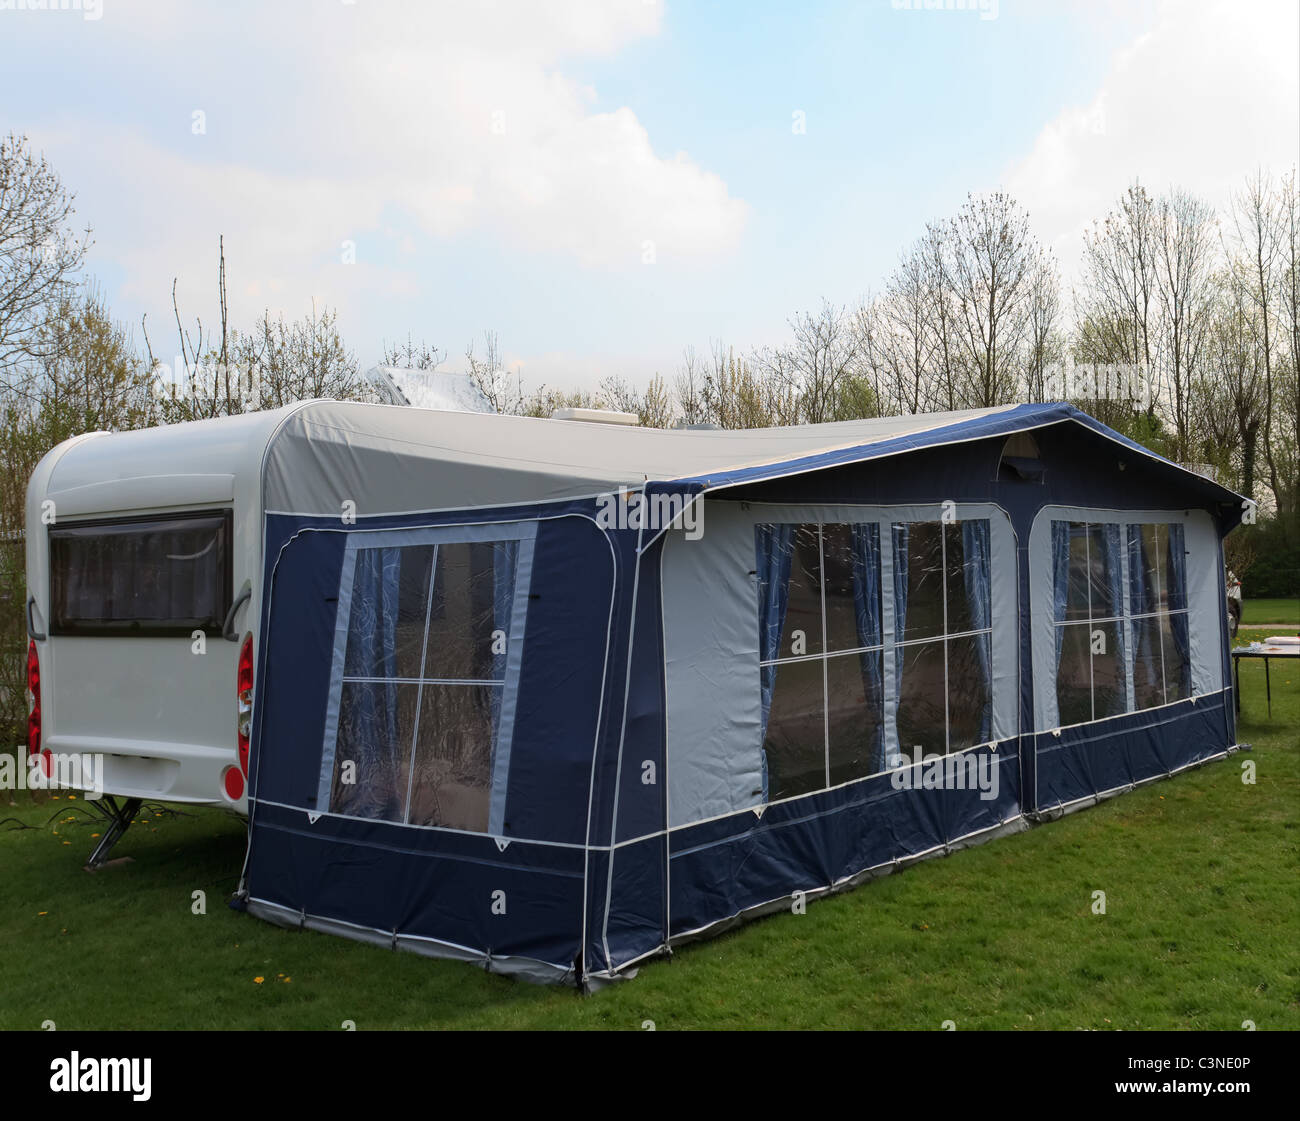 Trailer Curtains Long Trailer Caravan With Awning Tent With Blue Curtains Stock